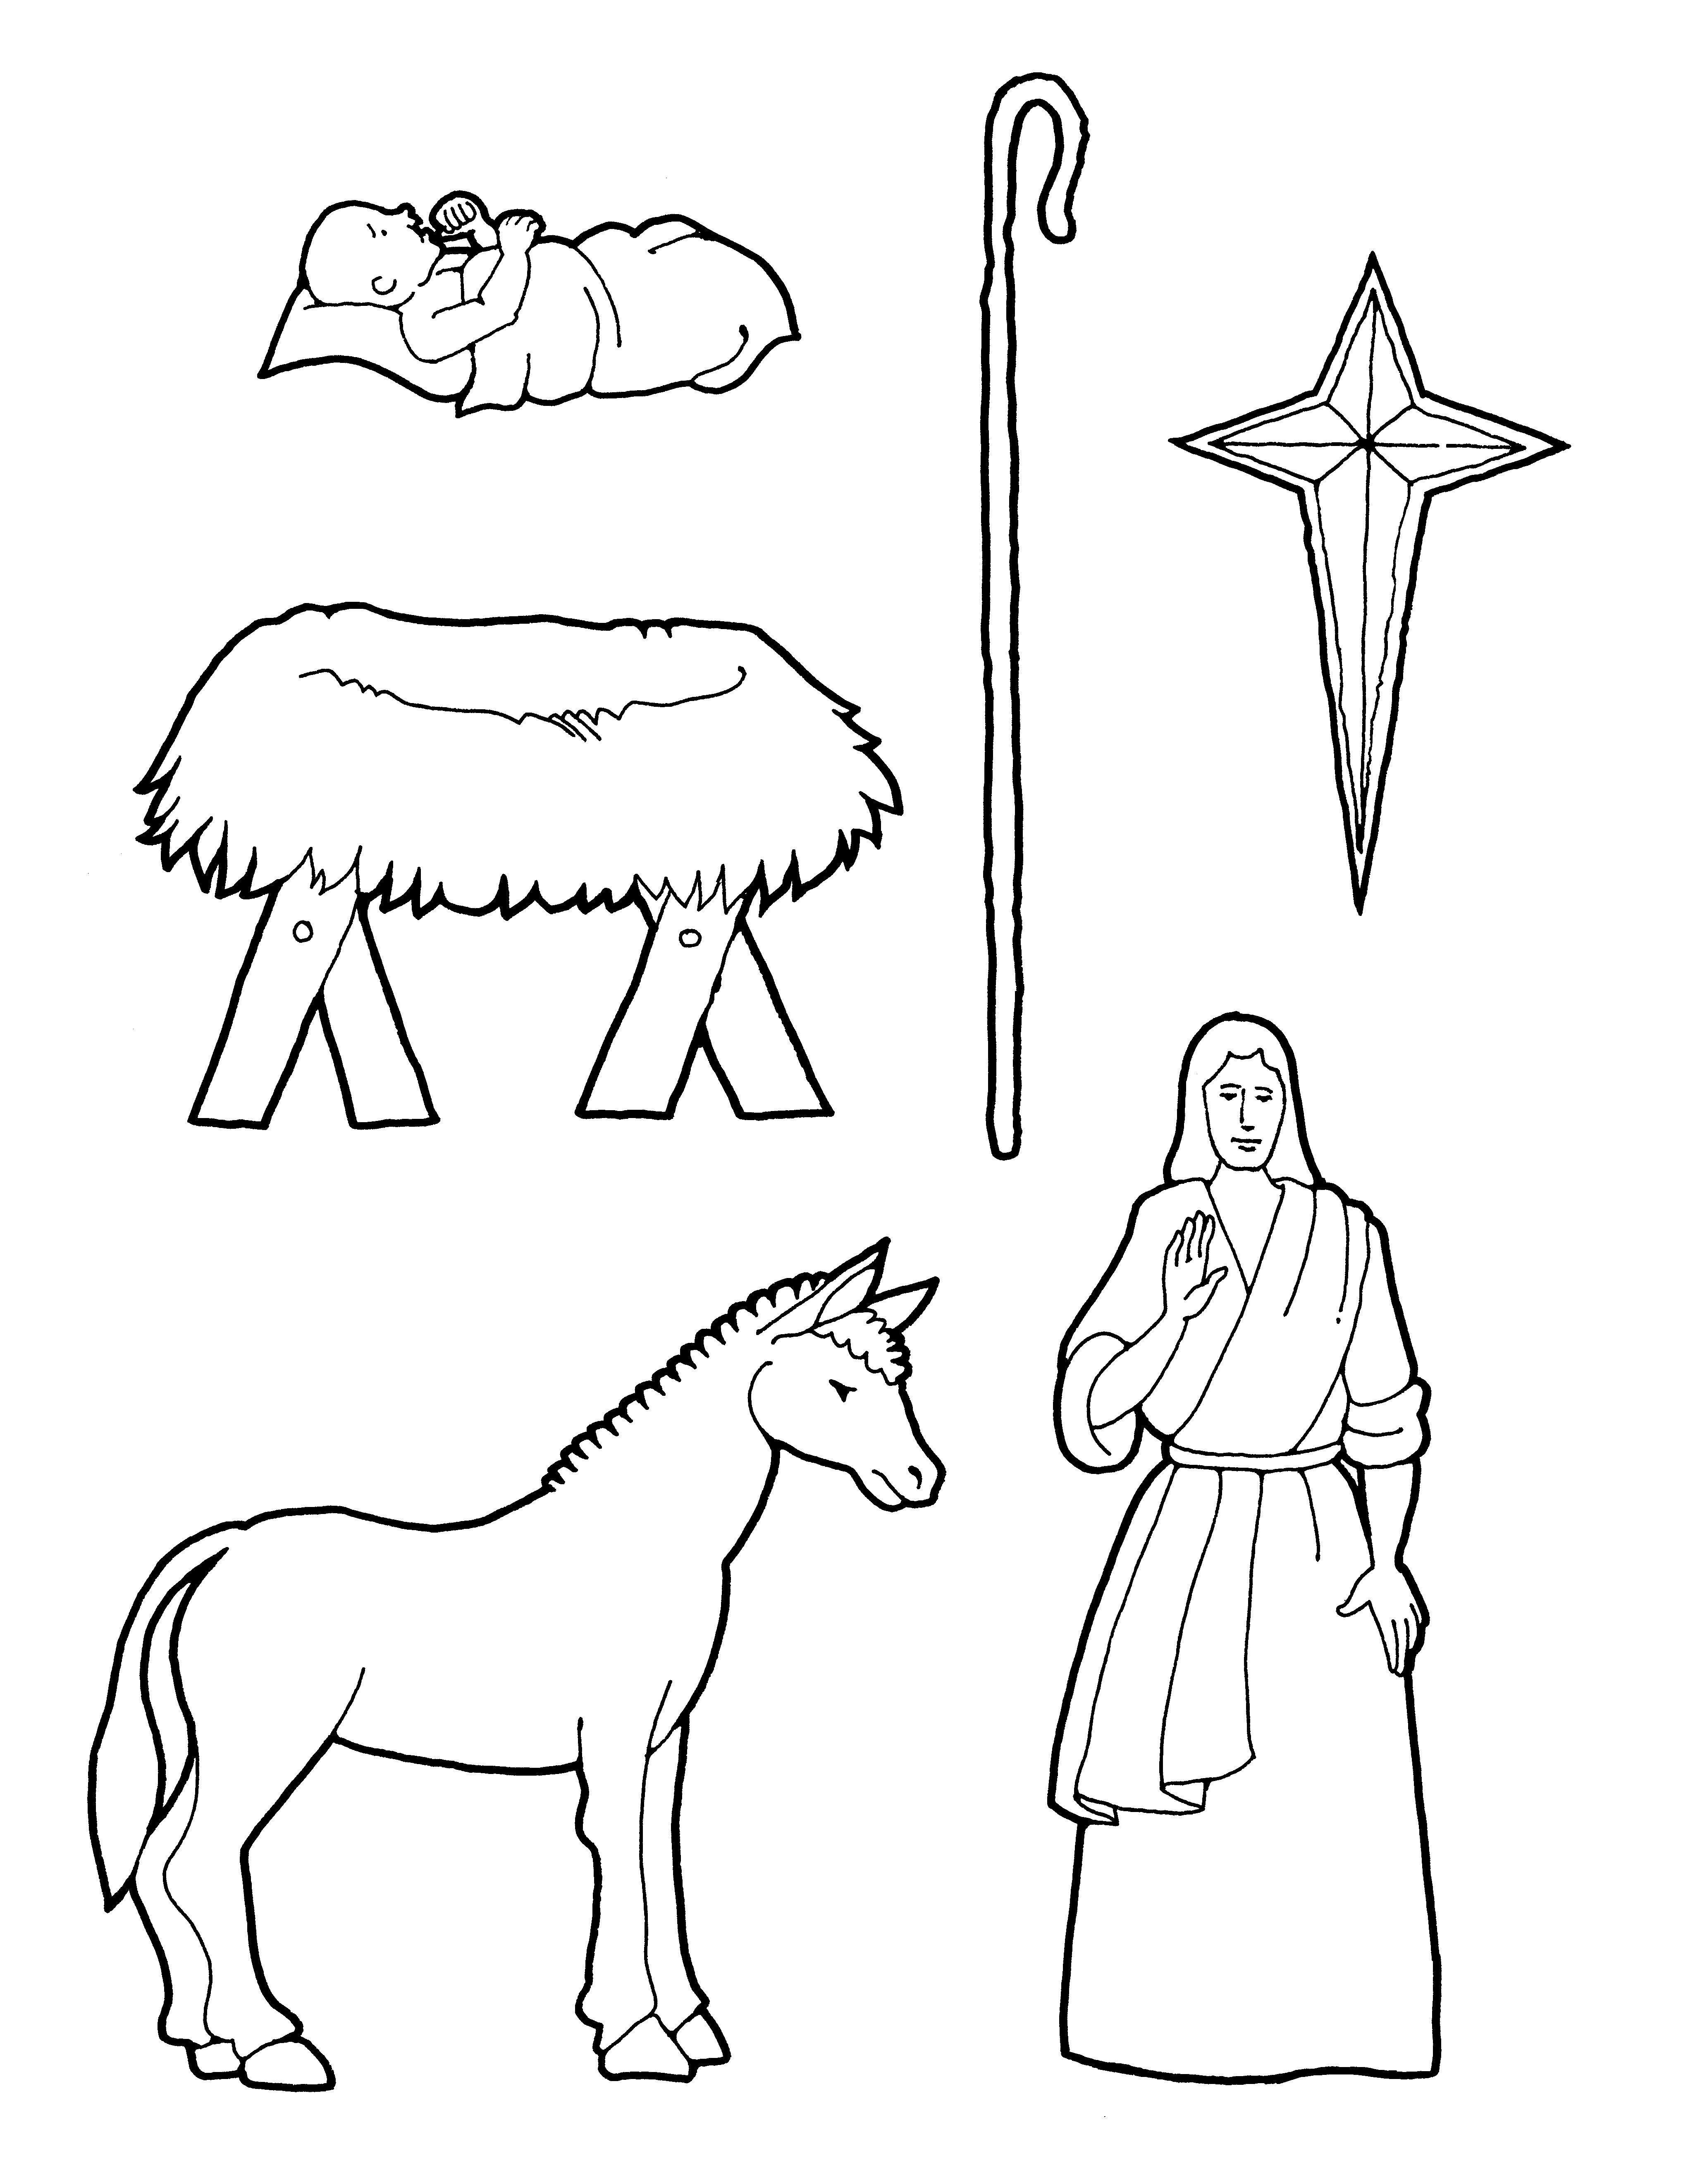 A coloring page of Nativity pieces.